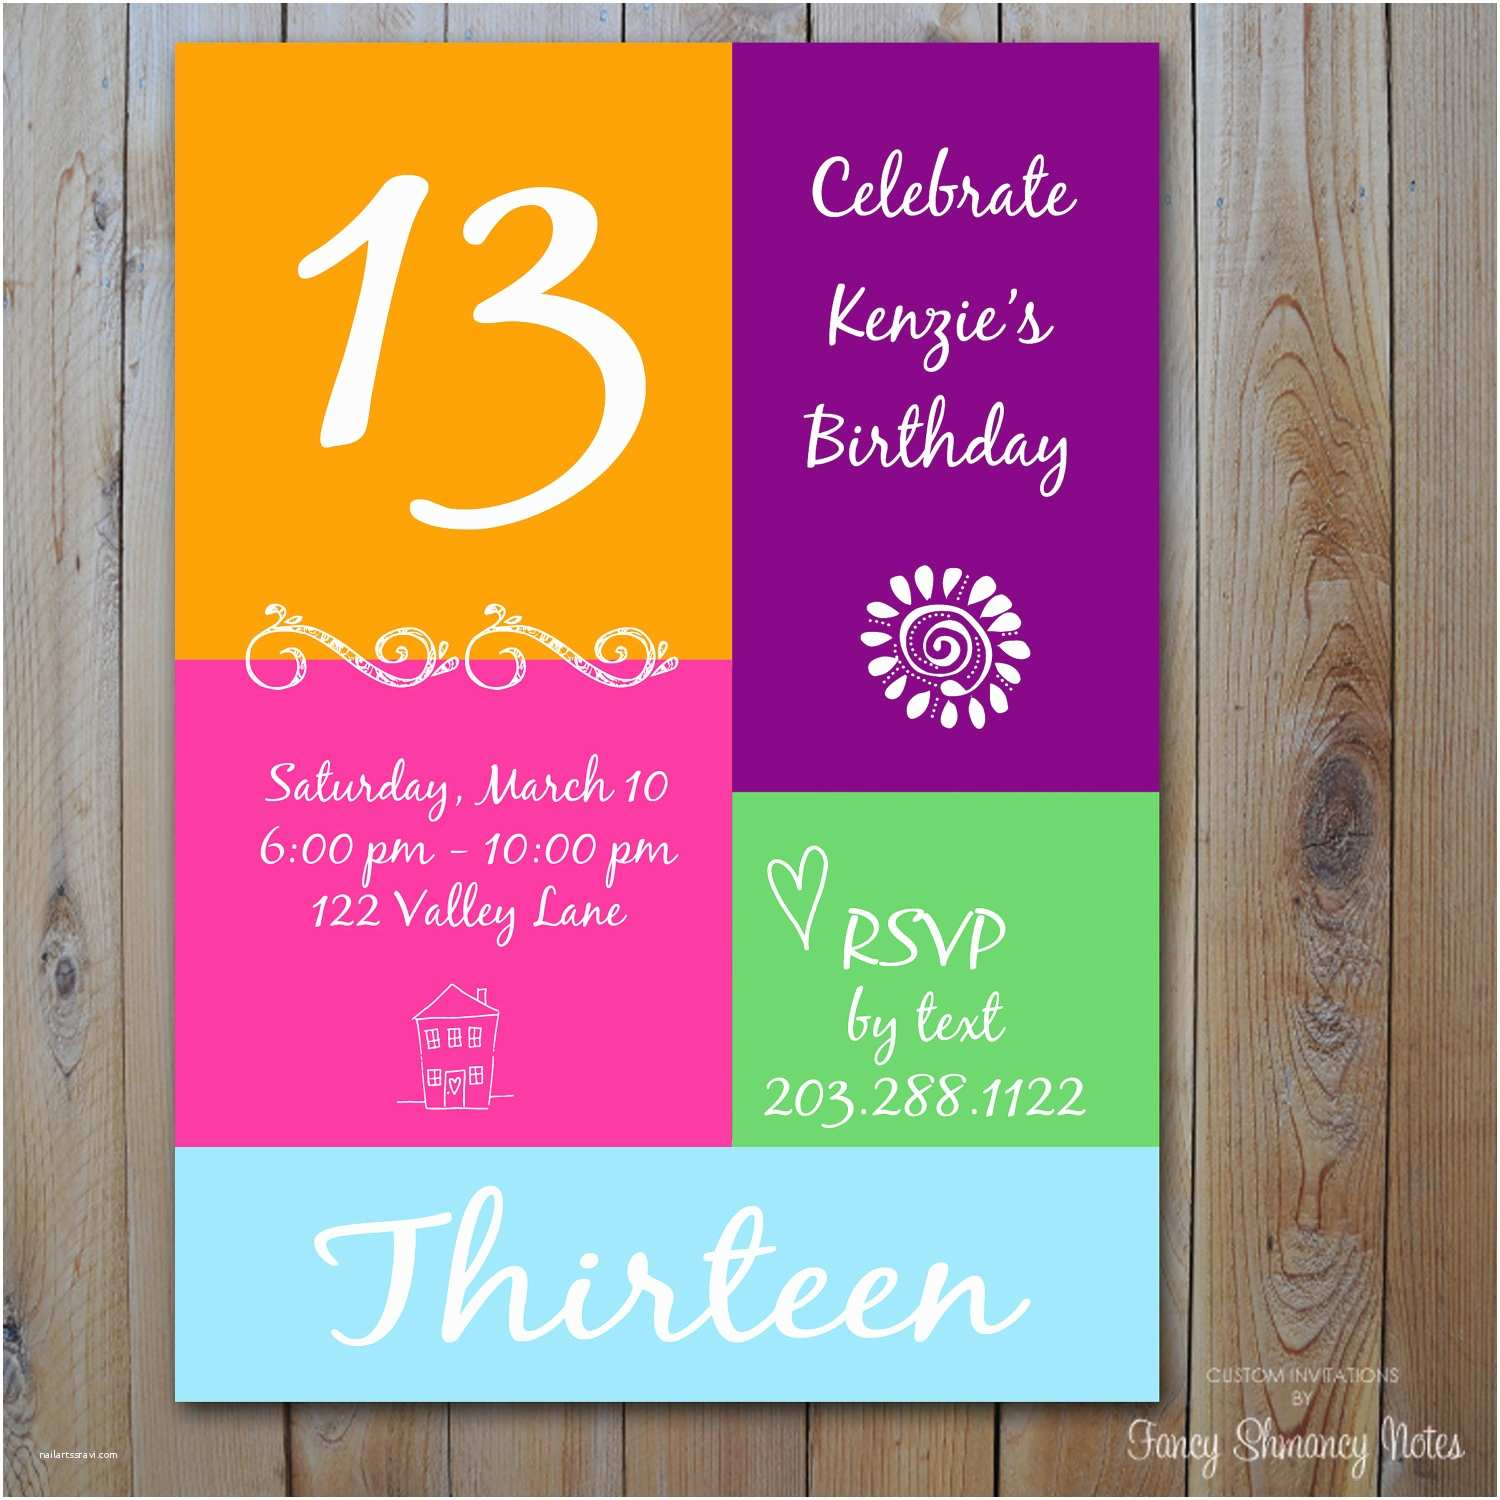 13th Birthday Invitations 13th Birthday Party Invitation Ideas – Bagvania Free